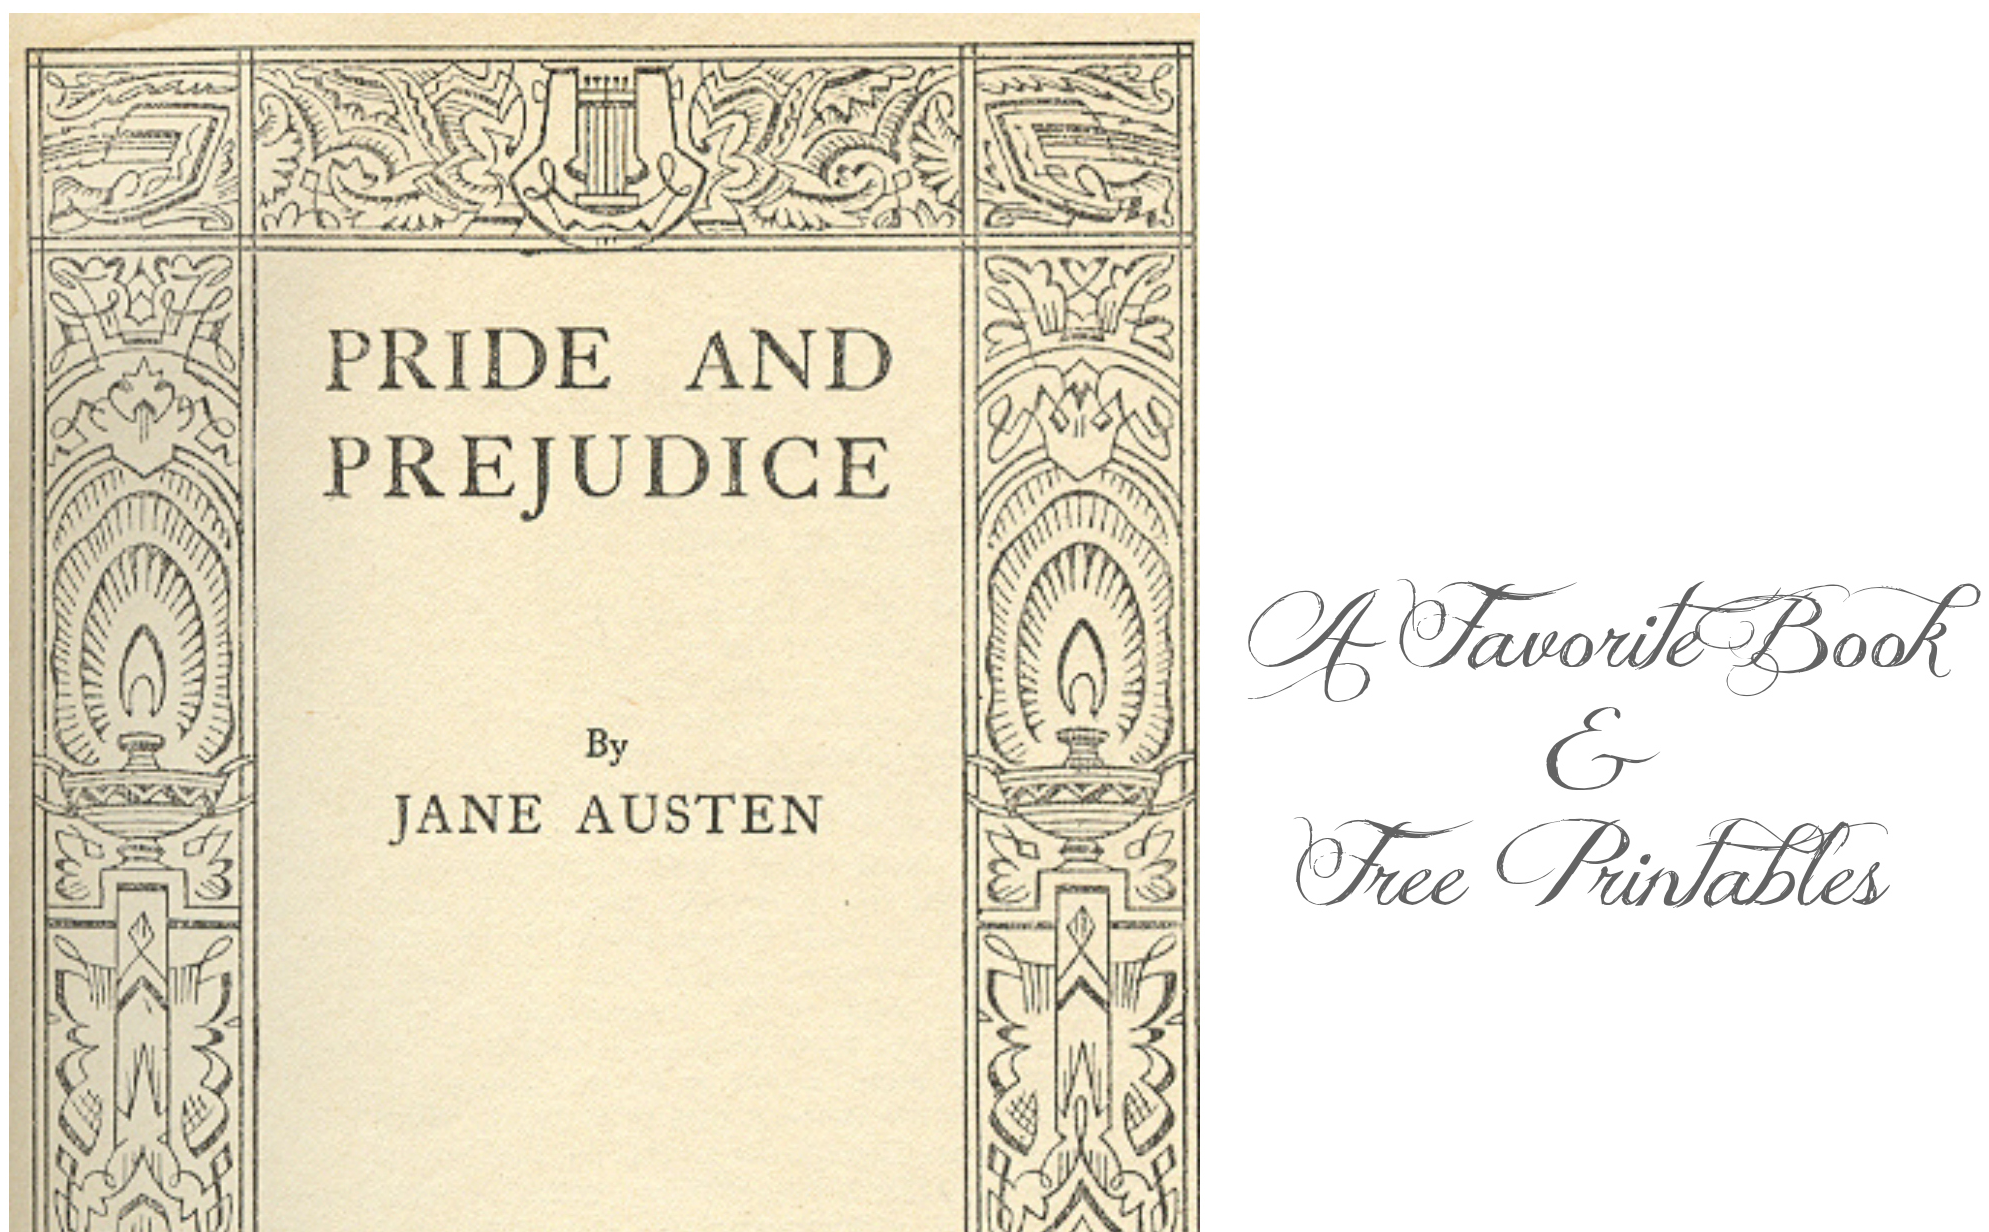 an analysis of the novel pride and prejudice by jane austen Find all available study guides and summaries for pride and prejudice by jane austen if there is a sparknotes, shmoop, or cliff notes guide, we will have it listed here.